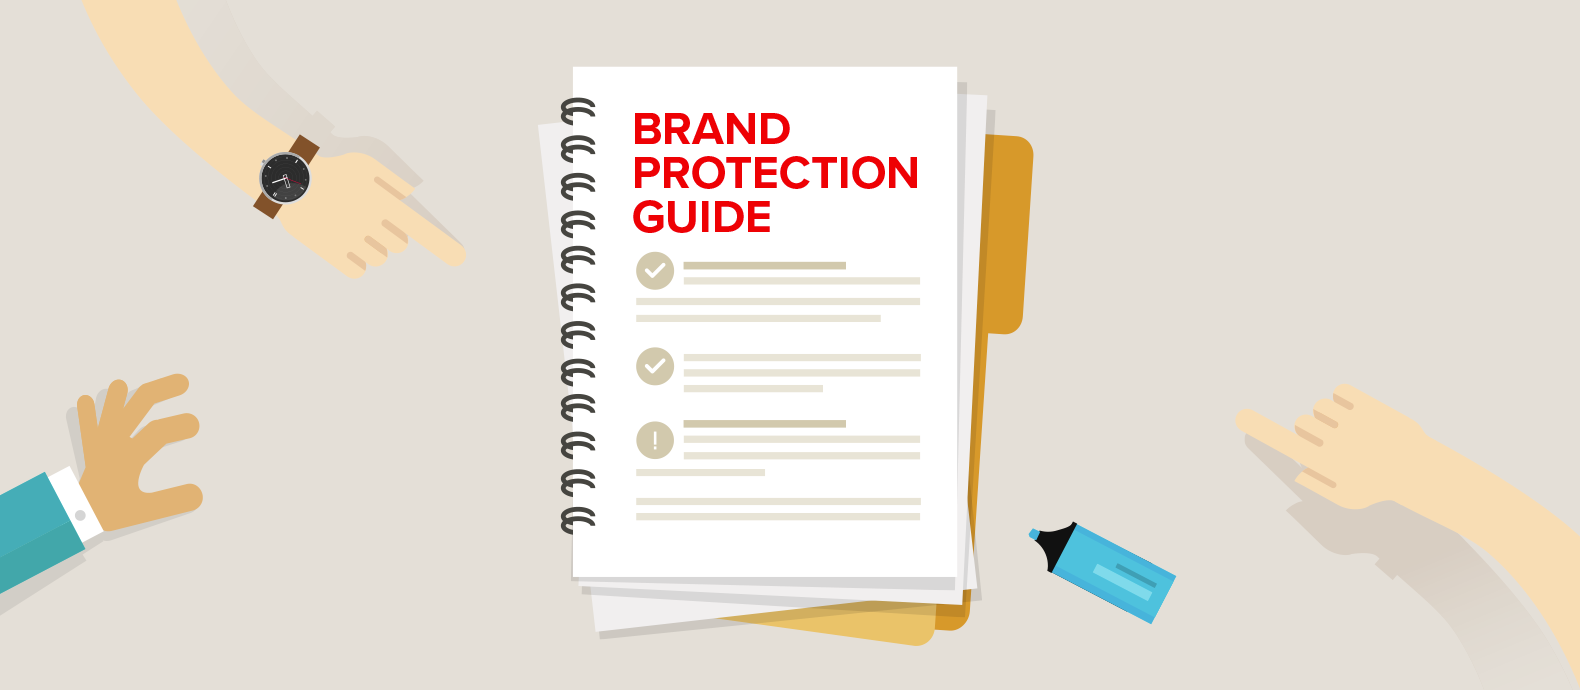 The ultimate guide to brand protection